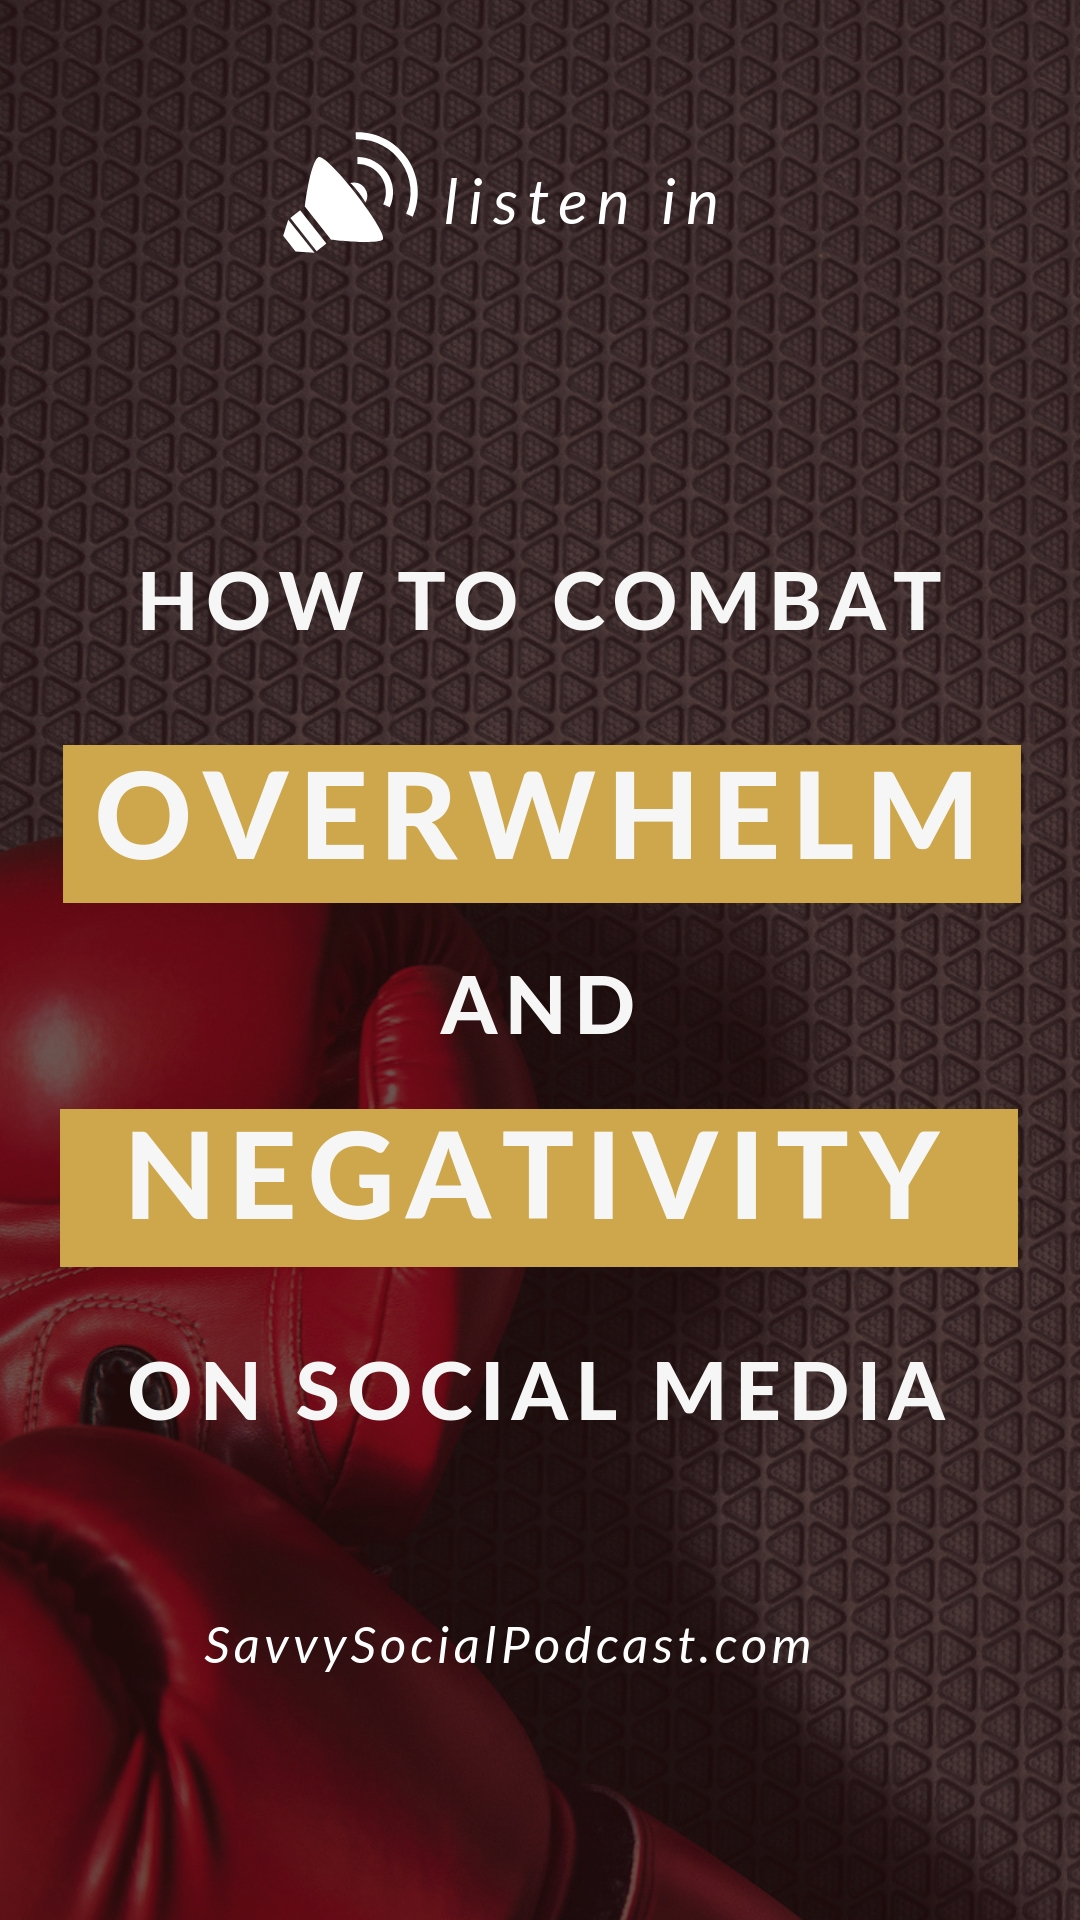 Raise your hand if social media is overwhelming & negative for you. ✋  You\'re not alone! In this podcast episode, you\'ll hear some practical tips for how to combat those stressful feelings.